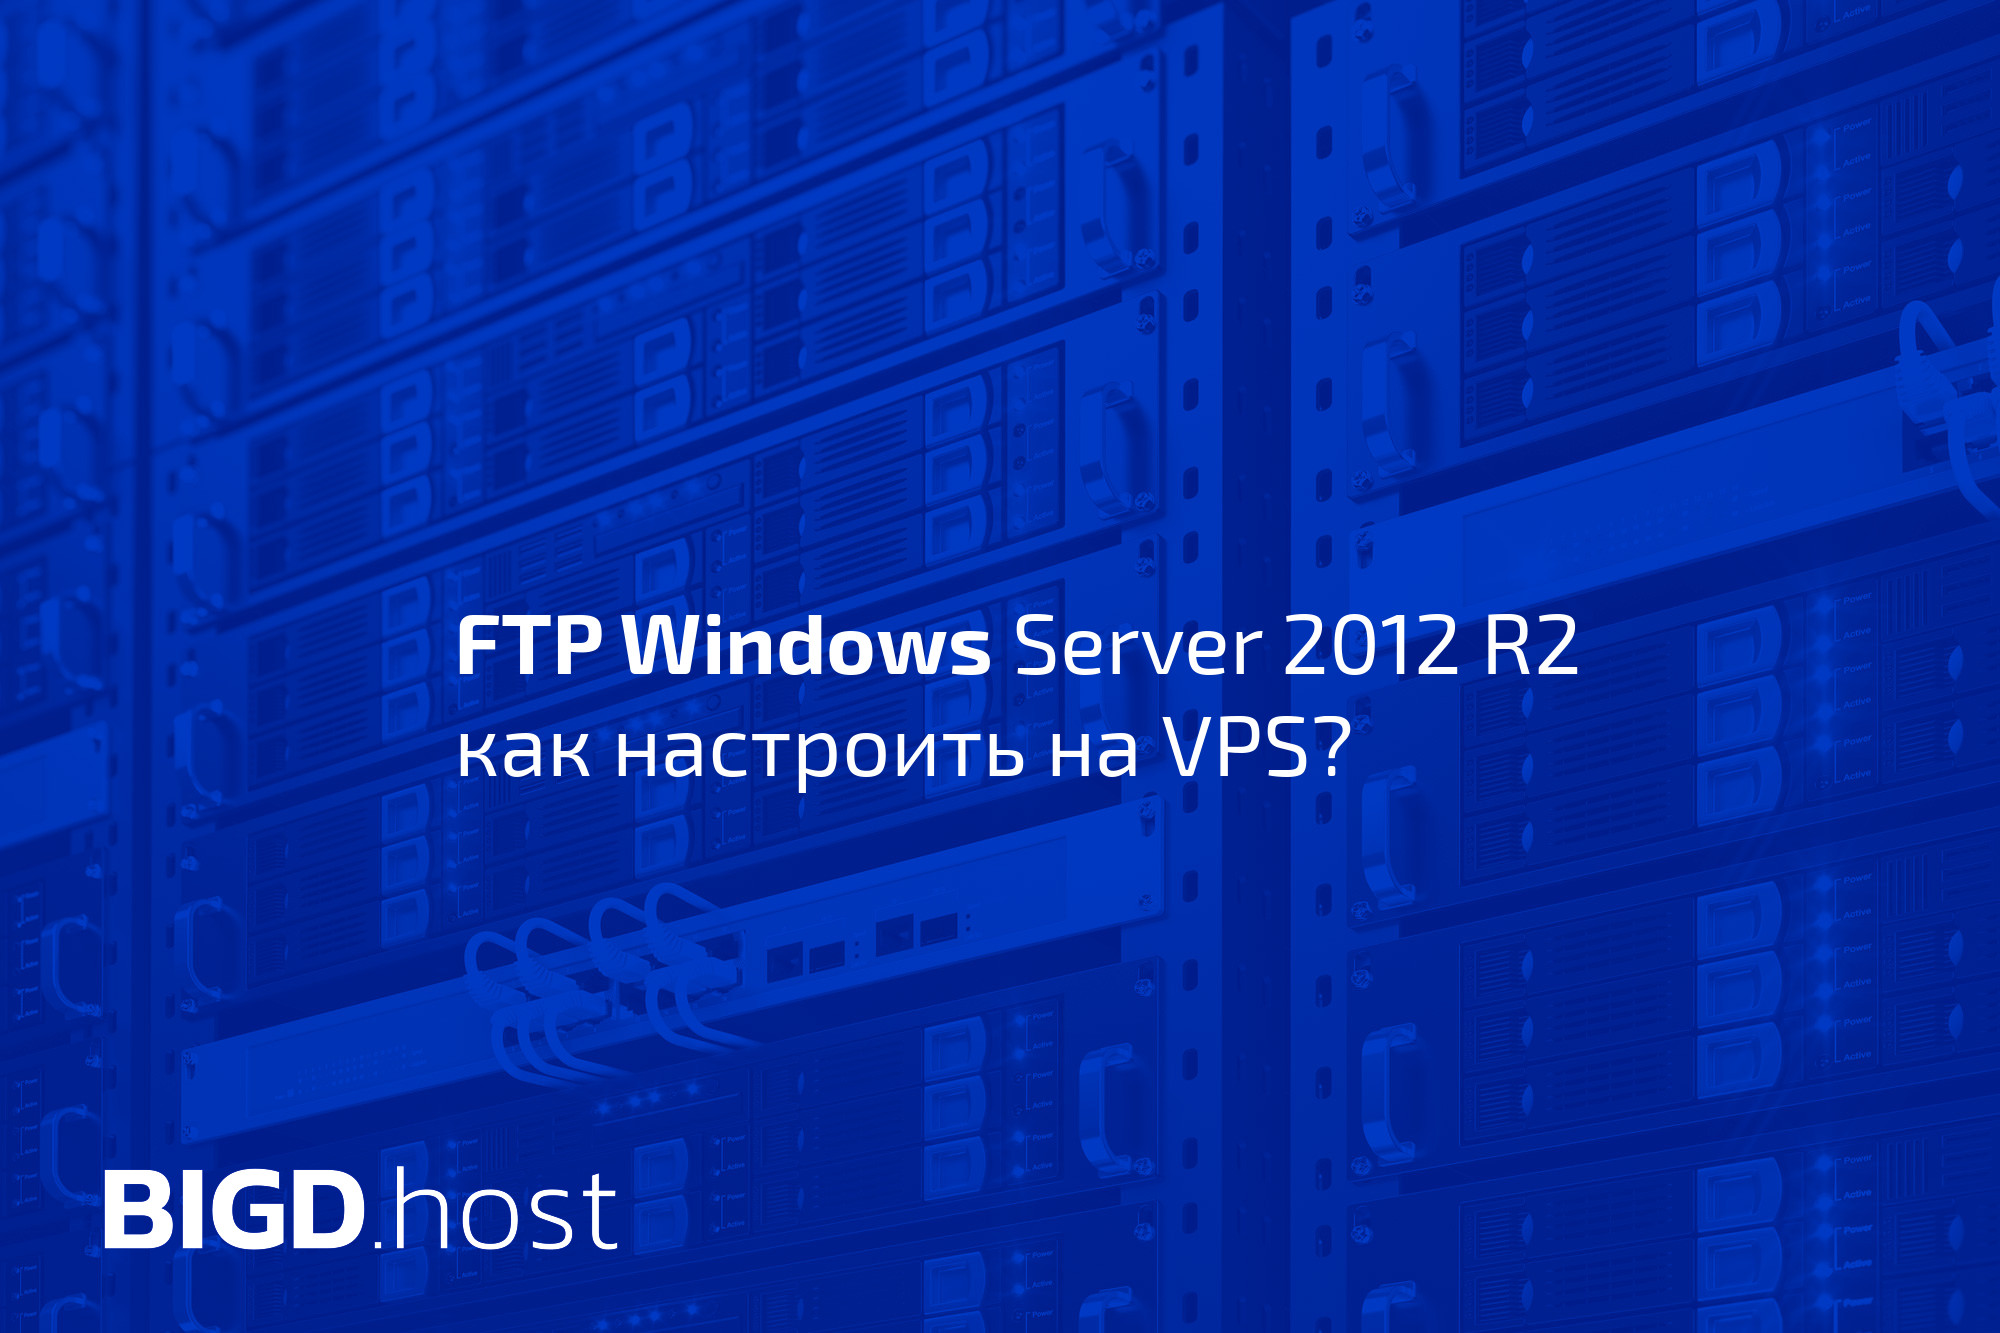 FTP Windows Server 2012 R2 on VPS